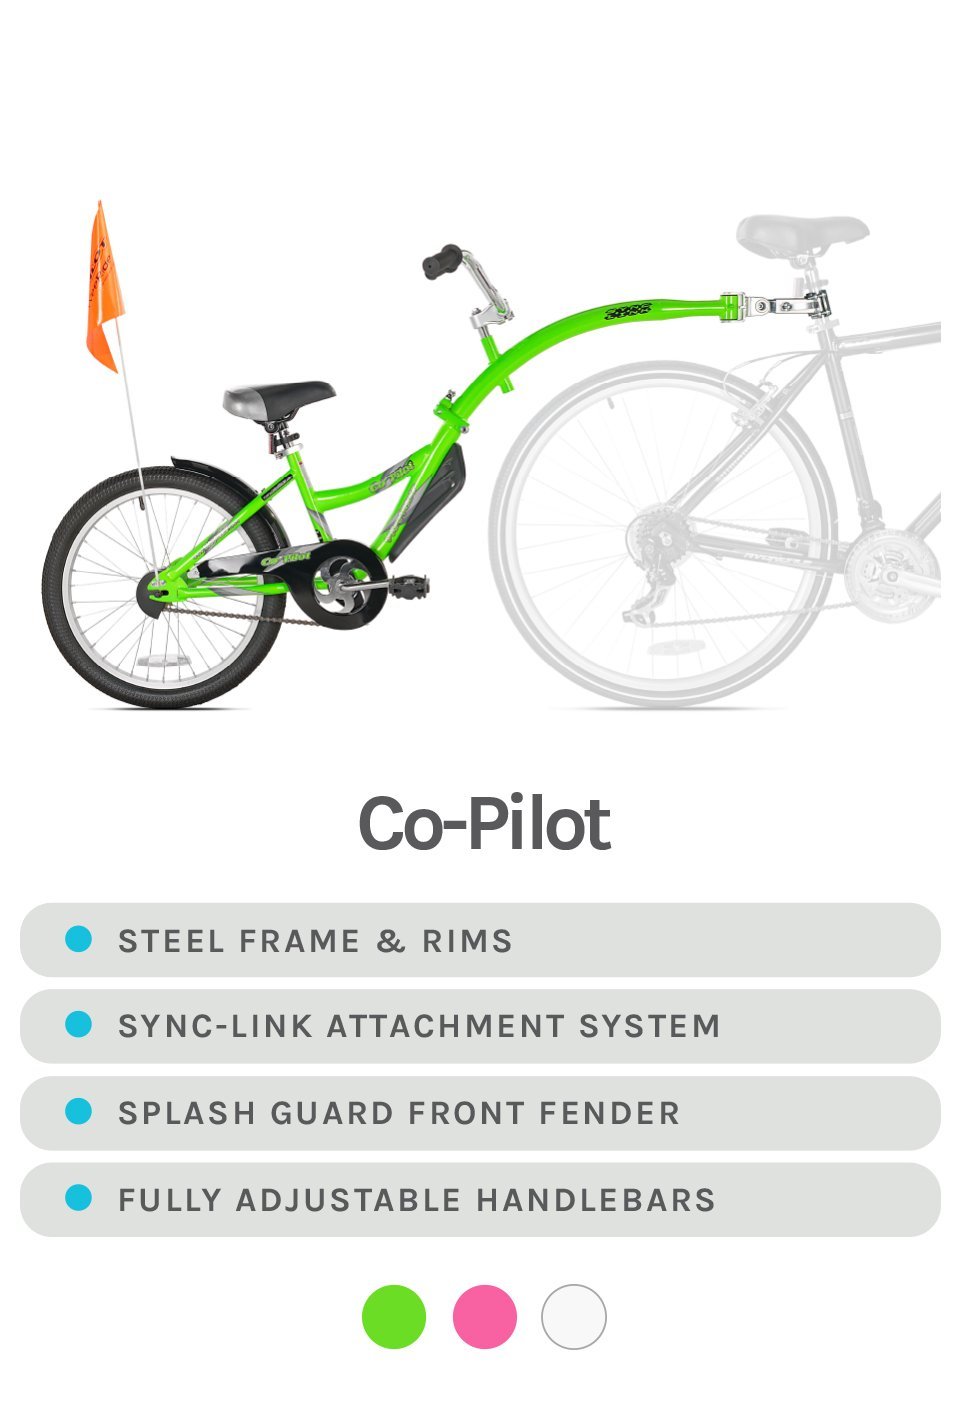 Co-Pilot (w/ orange safety flag)- Lime Green - Steel Frame & Rims, Sync-Link Attachment System, Splash Guard Front Fender, and Fully Adjustable Handlebars - Available in Lime Green, Pink, and White